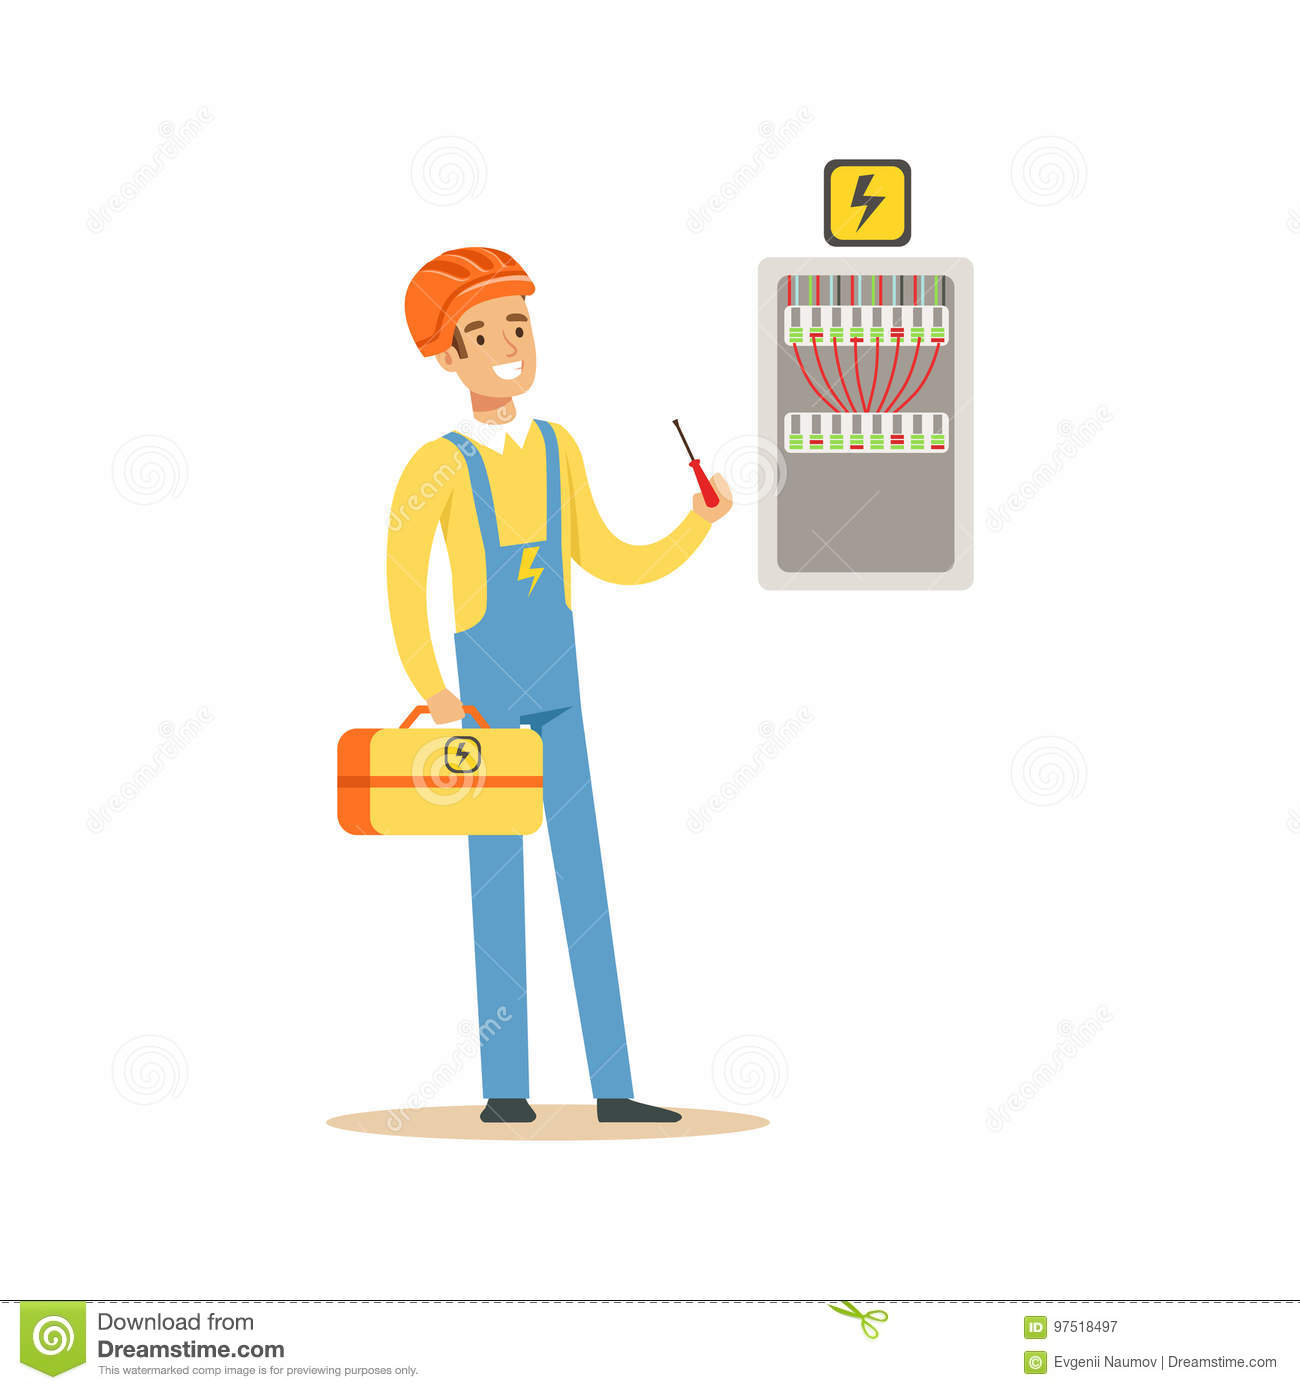 Professional electrician man character screwing equipment in fuse box,  electric man perforrming electrical works vector